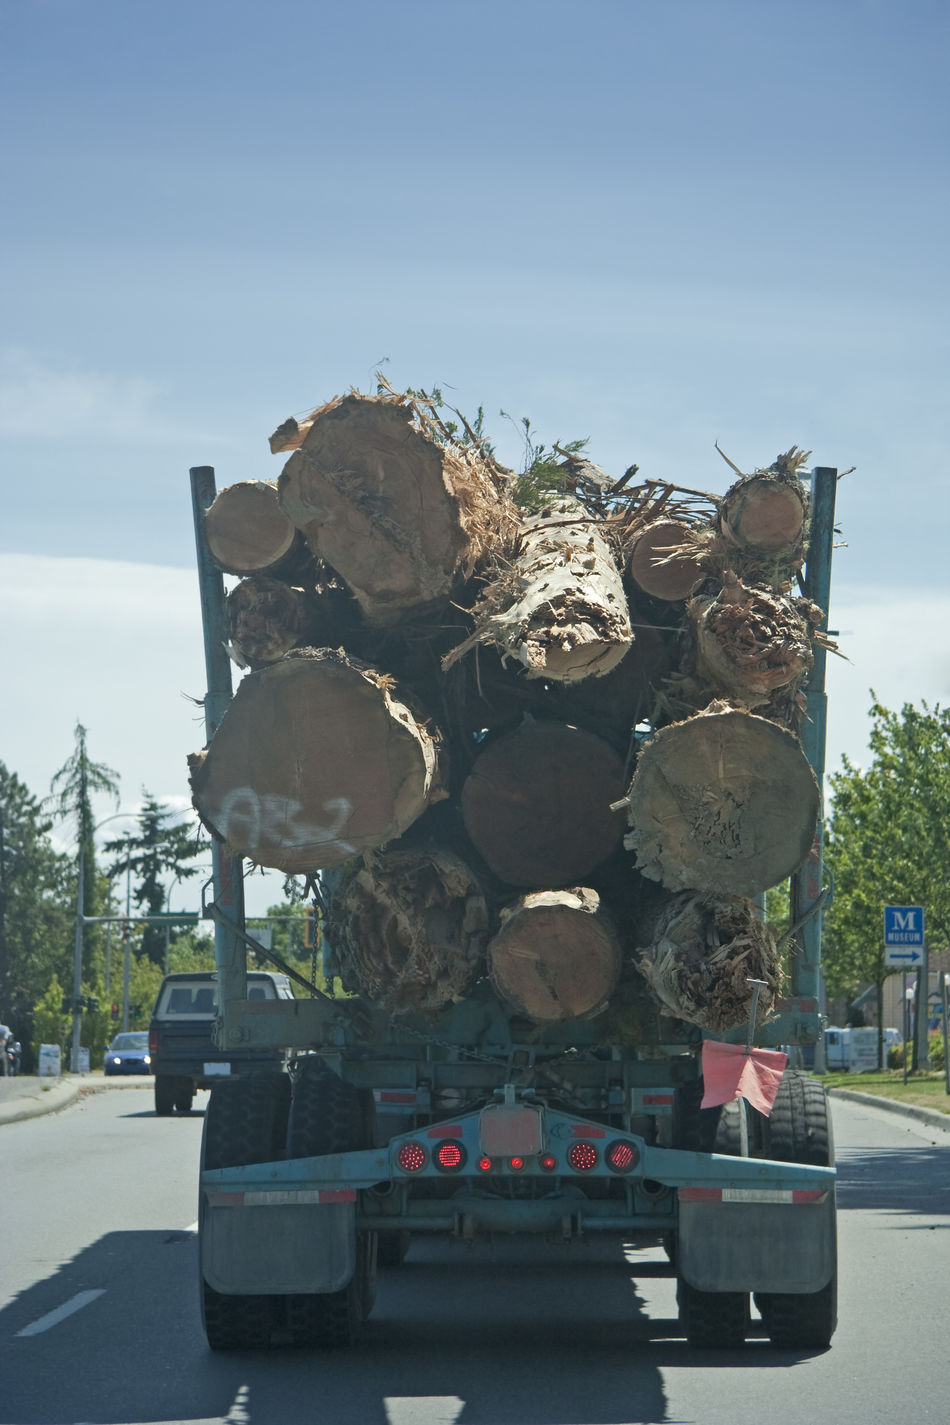 Truck in Motion carrying a Load of Logs - Vancouver Island, British Columbia, Canada British Columbia Canada Dead Tree Deforestation Driving Environment Environmental Issues Fallen Tree Freight Transportation Highway Highways&Freeways Lumber Industry Lumberjack Mode Of Transport No People Rear View Road Semi-truck Stack Timber Traffic Transportation Tree Tree Trunk Truck